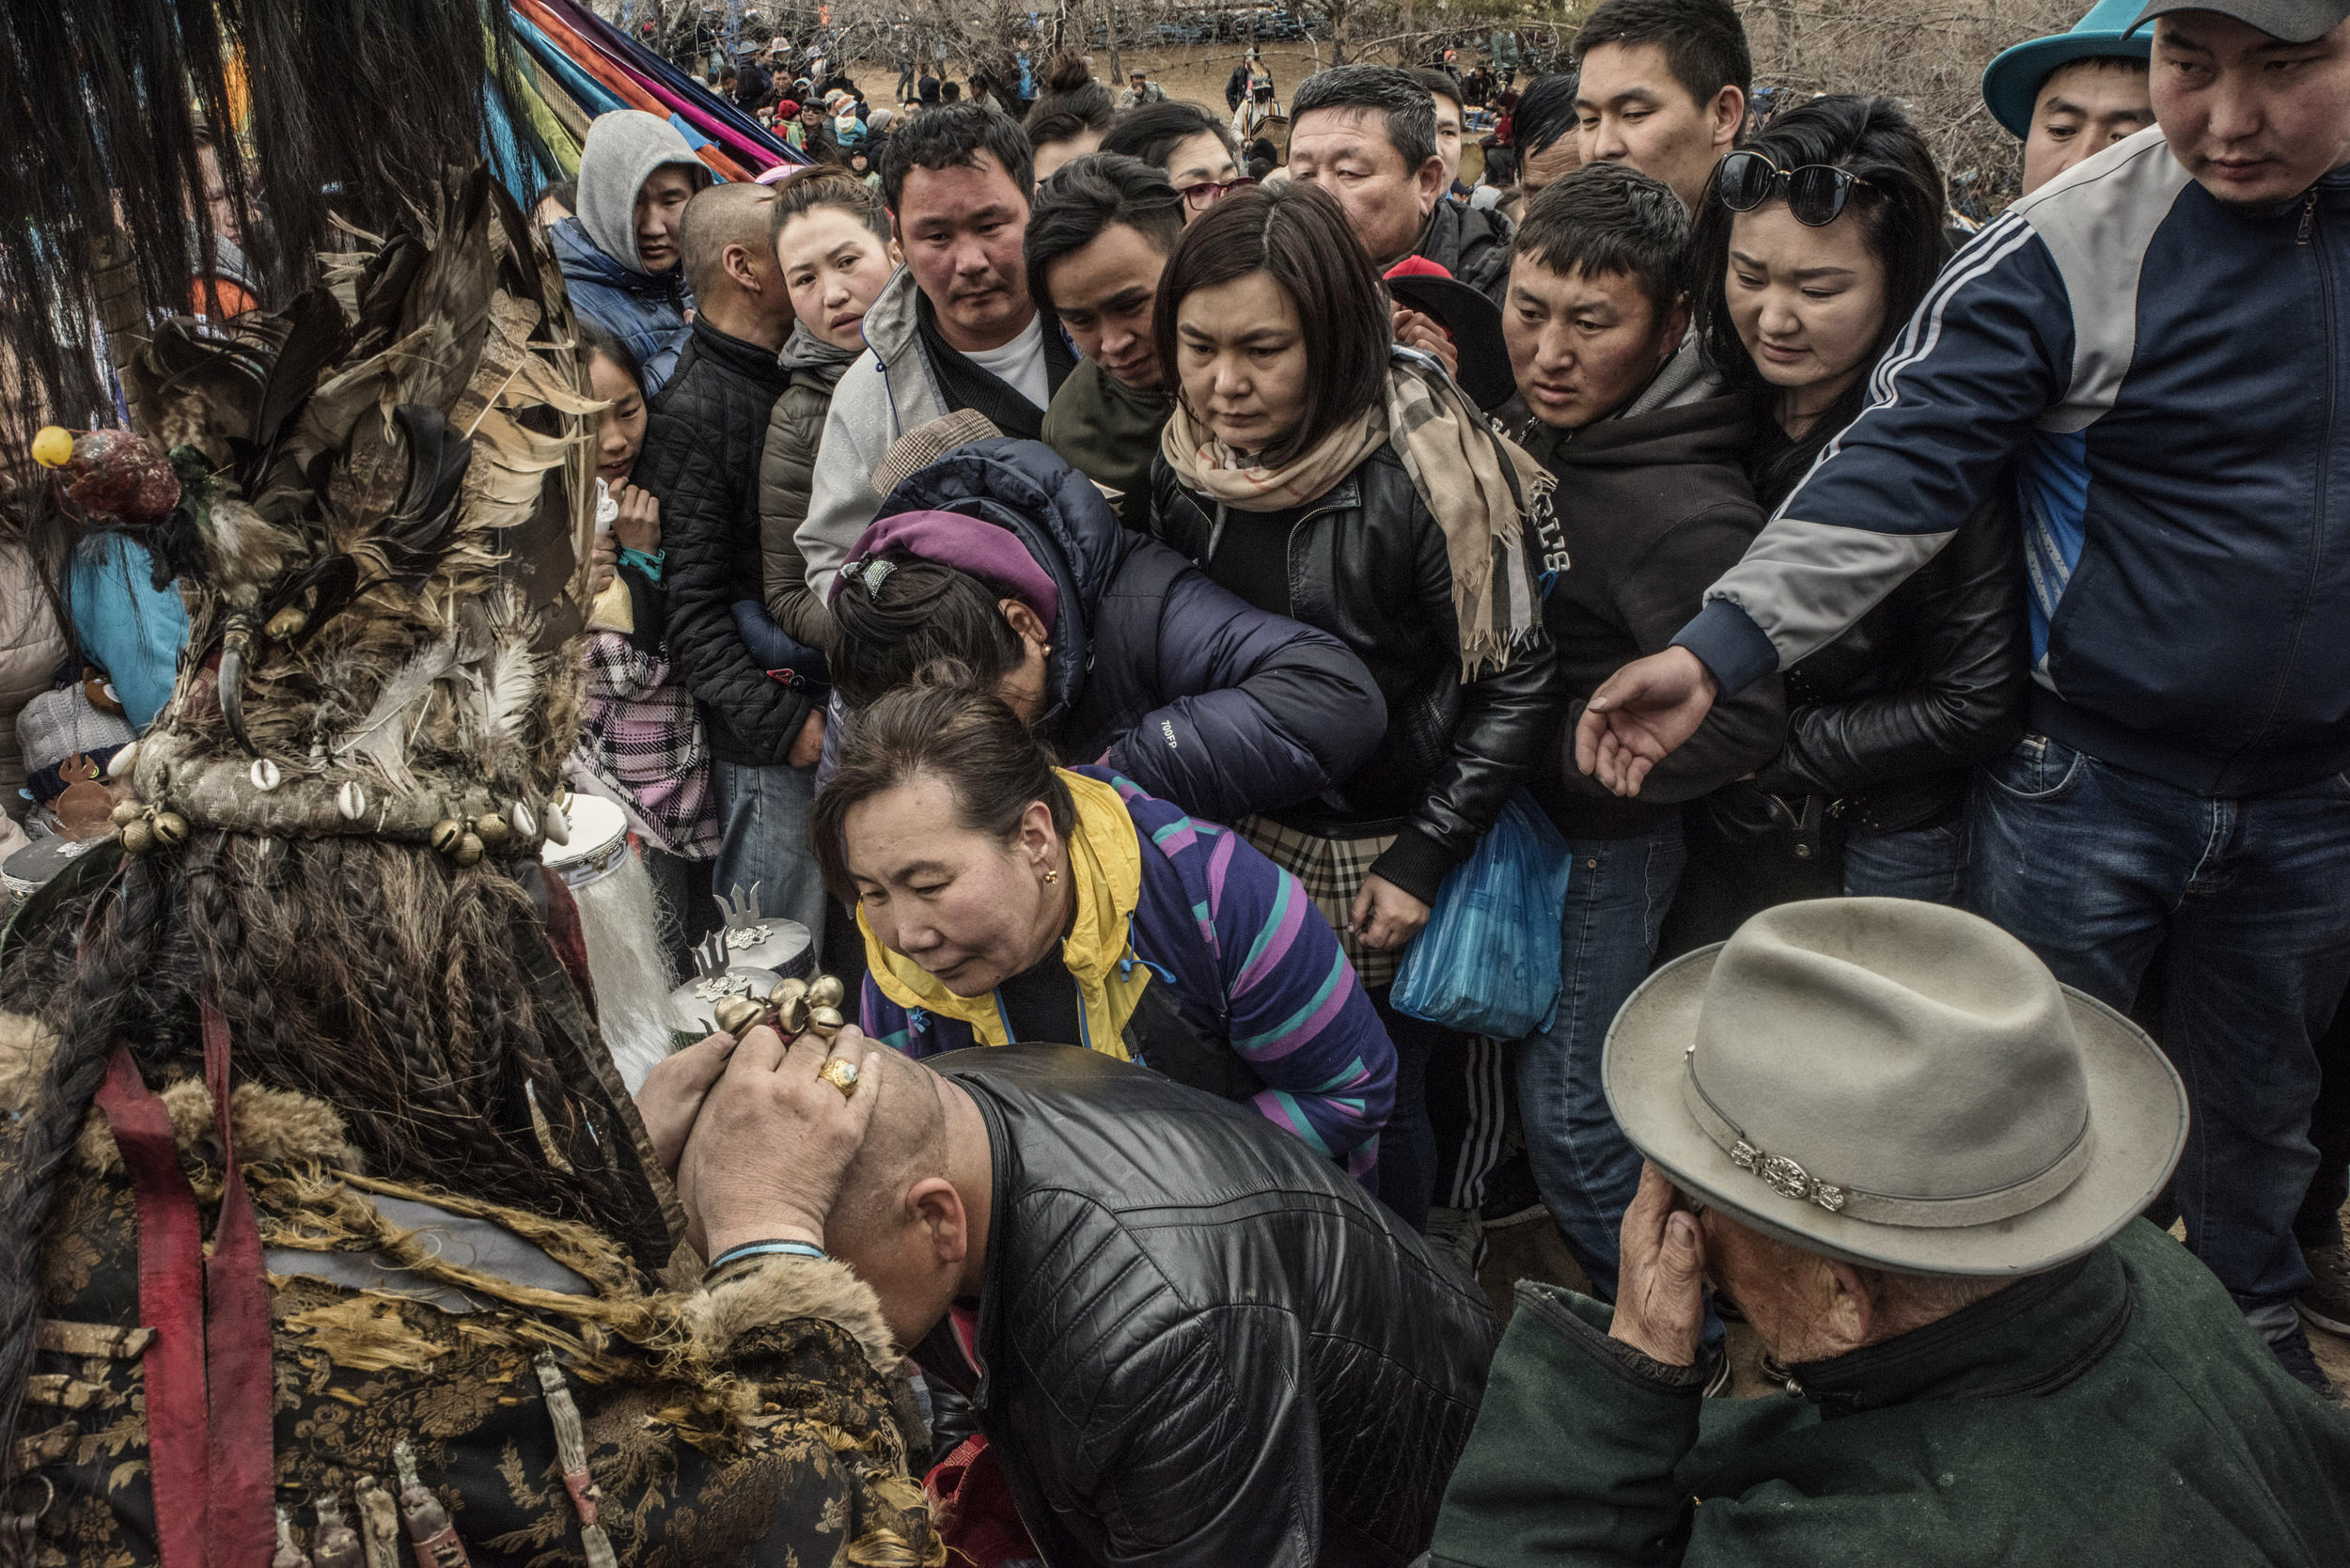 Pilgrims lining up in front of a shaman, master of ceremony at a celebration of spring, waiting to be blessed. Shamans work as mediators between the spirits and human beings and are believed to hold powers such as healing.